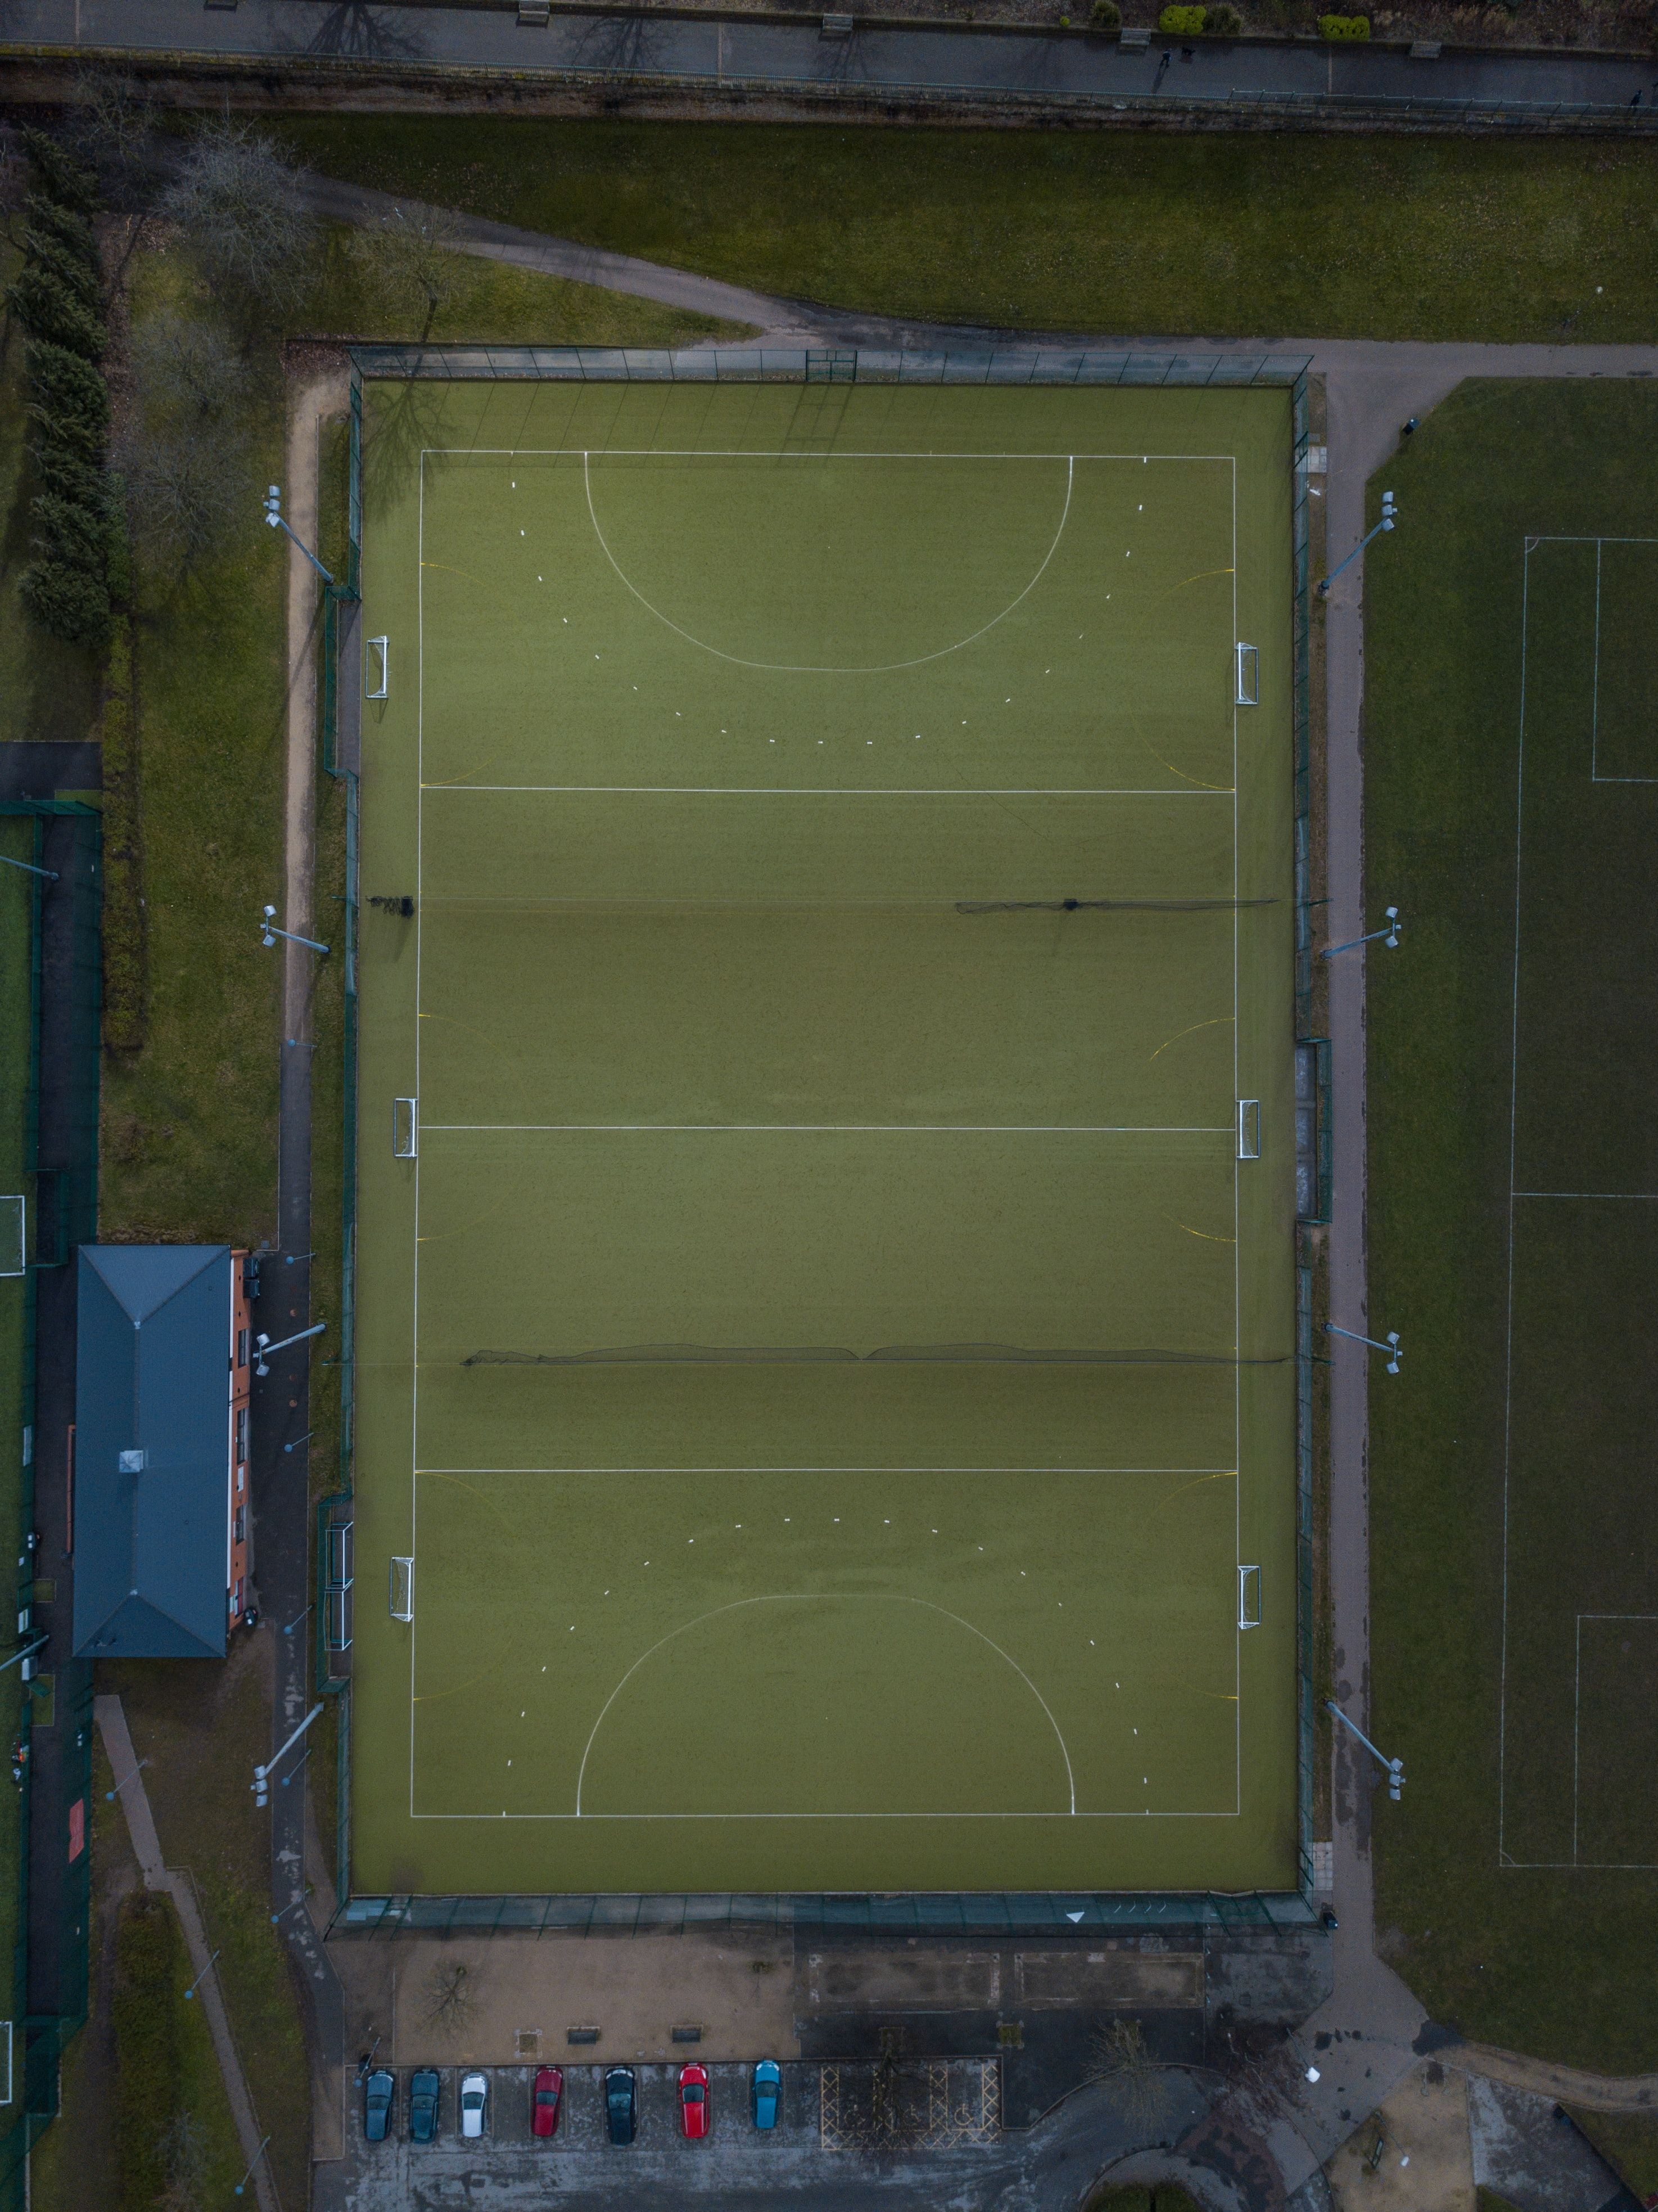 aerial photography of court